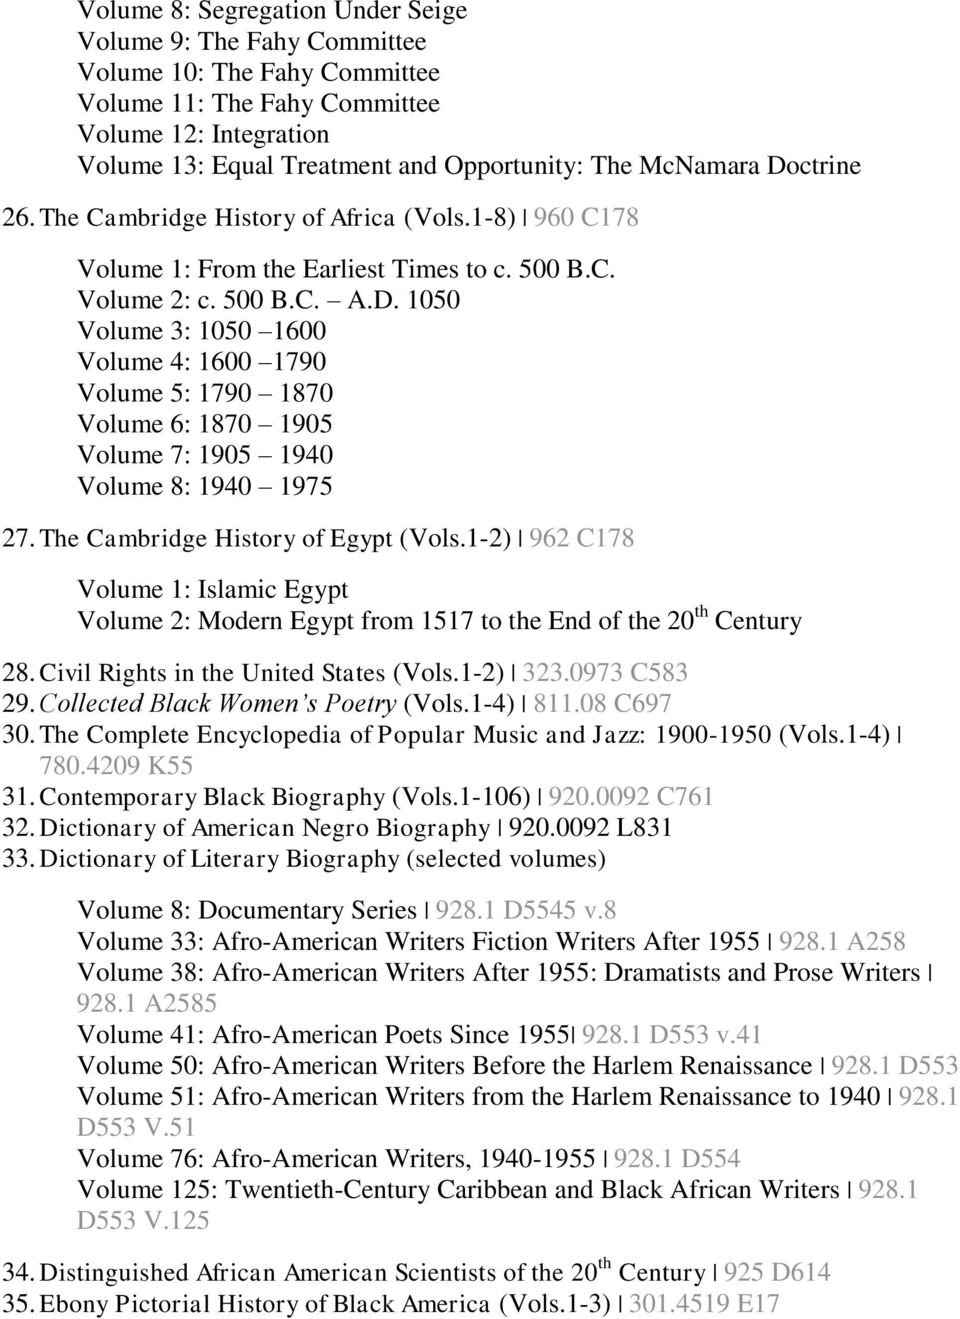 The Cambridge History of Egypt (Vols.1-2) 962 C178 Volume 1: Islamic Egypt Volume 2: Modern Egypt from 1517 to the End of the 20 th Century 28. Civil Rights in the United States (Vols.1-2) 323.